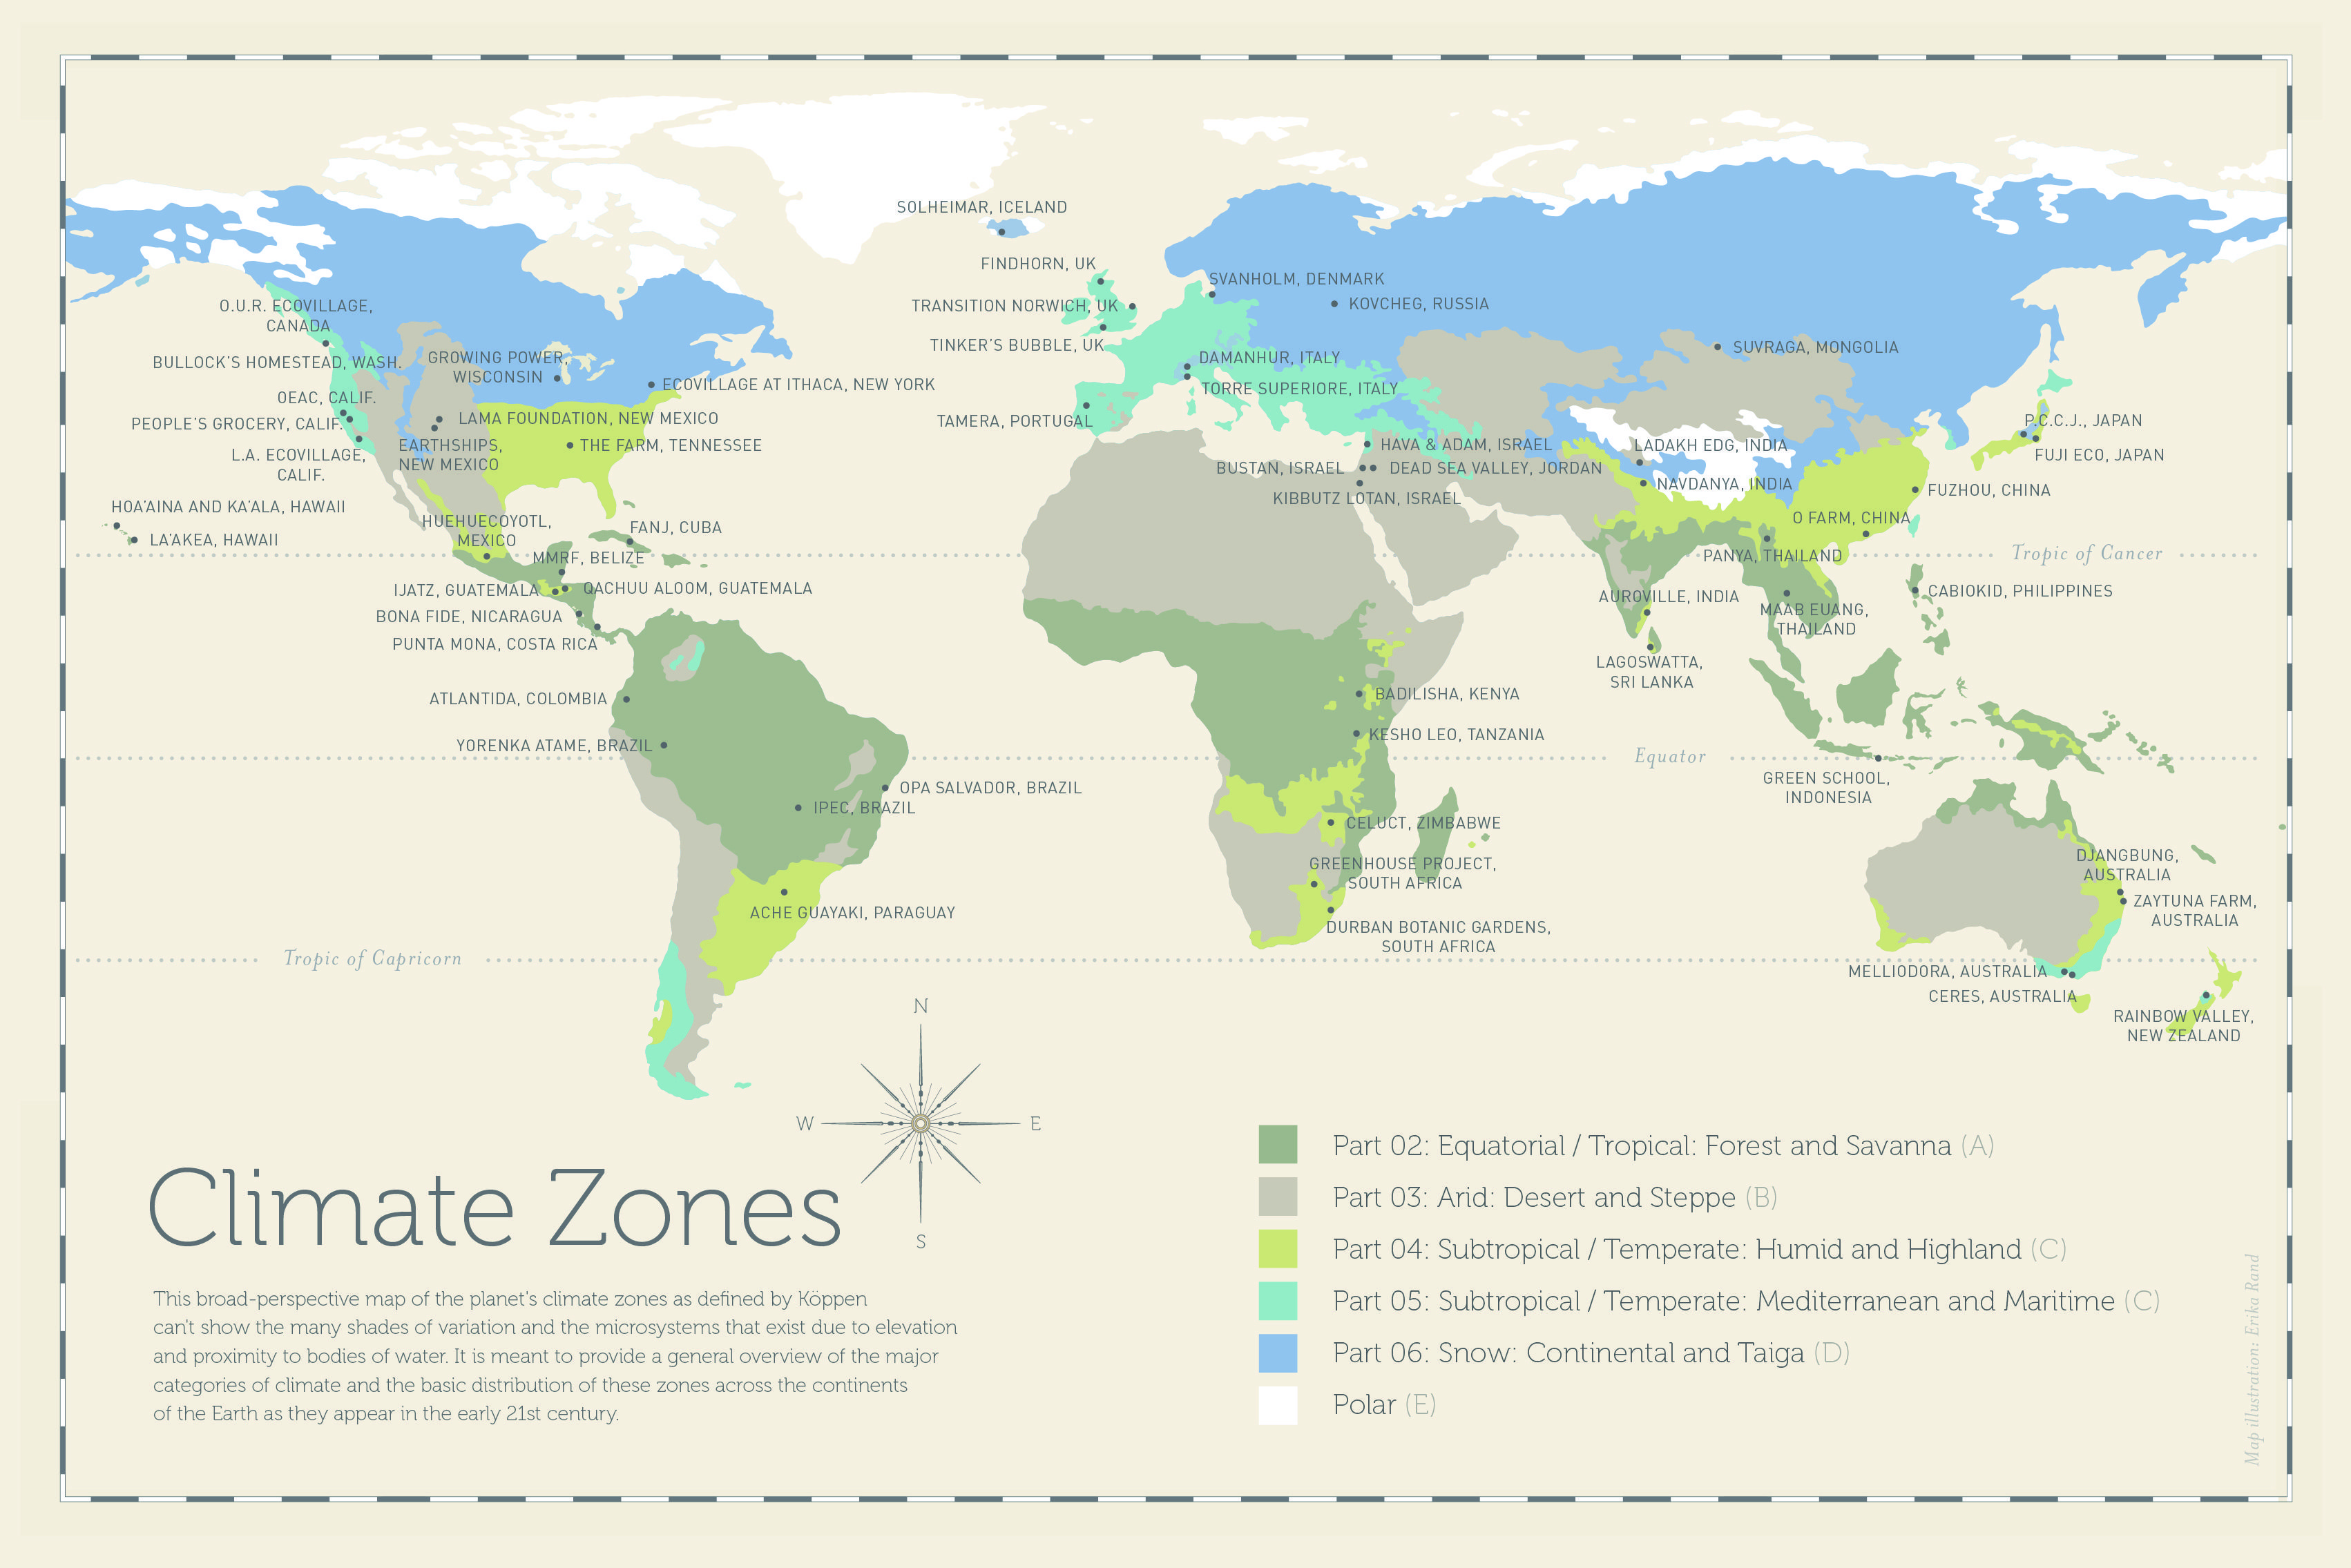 Climate Zones Map Revised